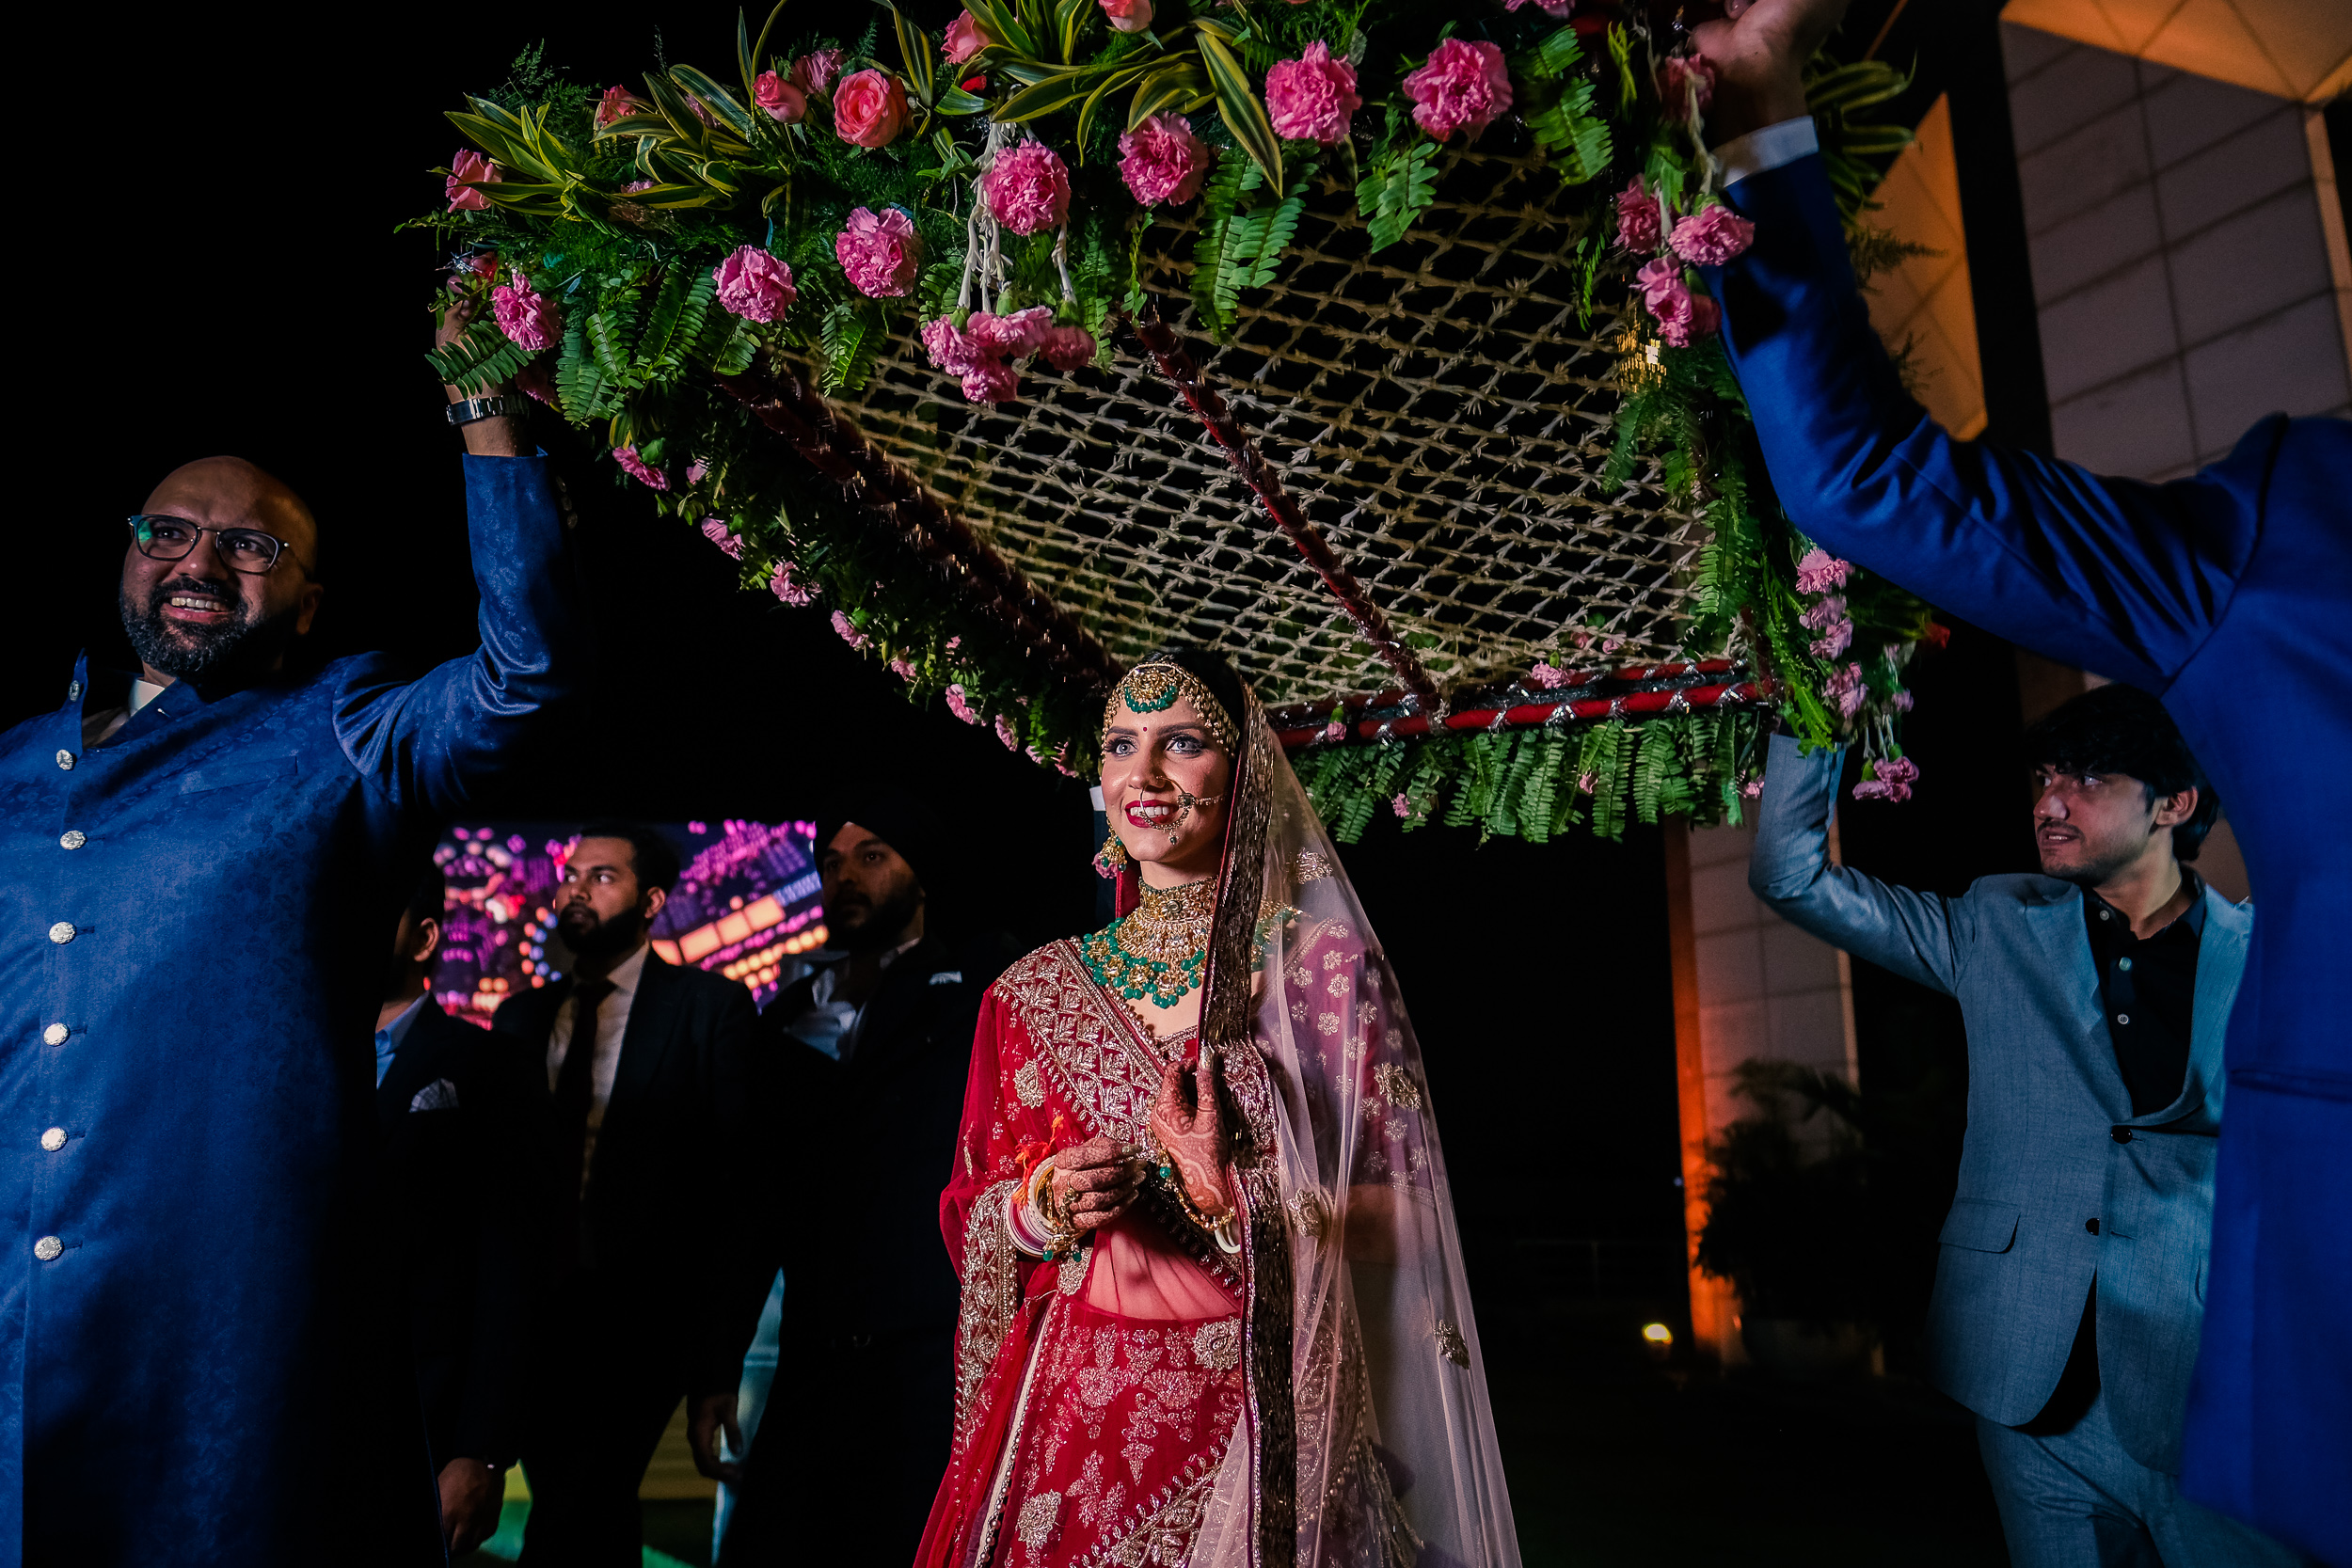 Indian bridal entry at a Delhi wedding.